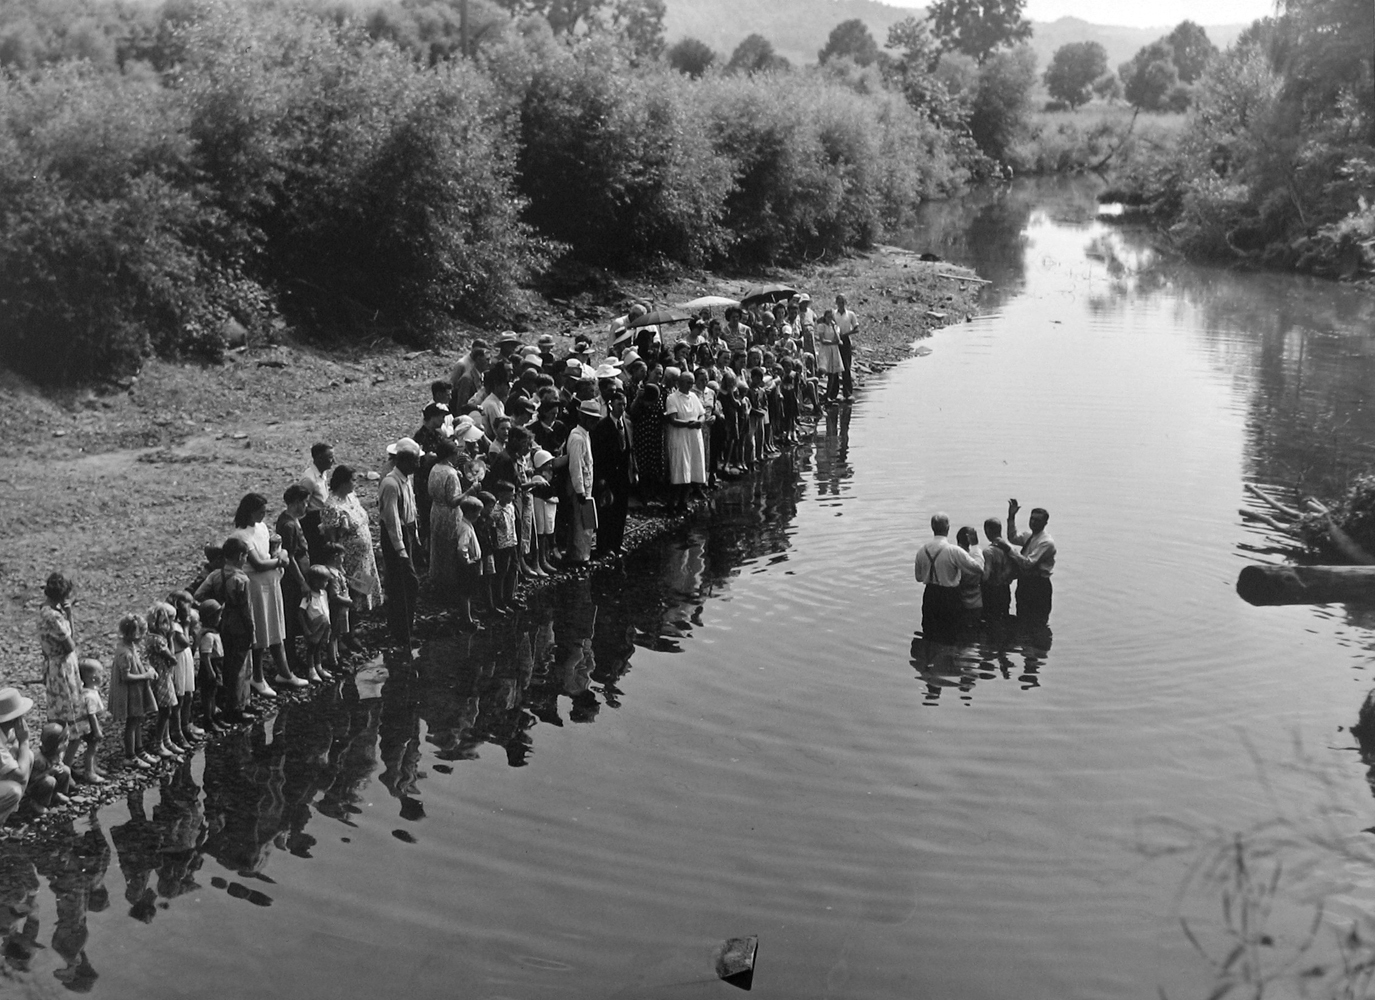 Marion Post Wolcott, Baptism in Triplett Creek, KY, 1940 gelatin silver print, 11 x 14 inches